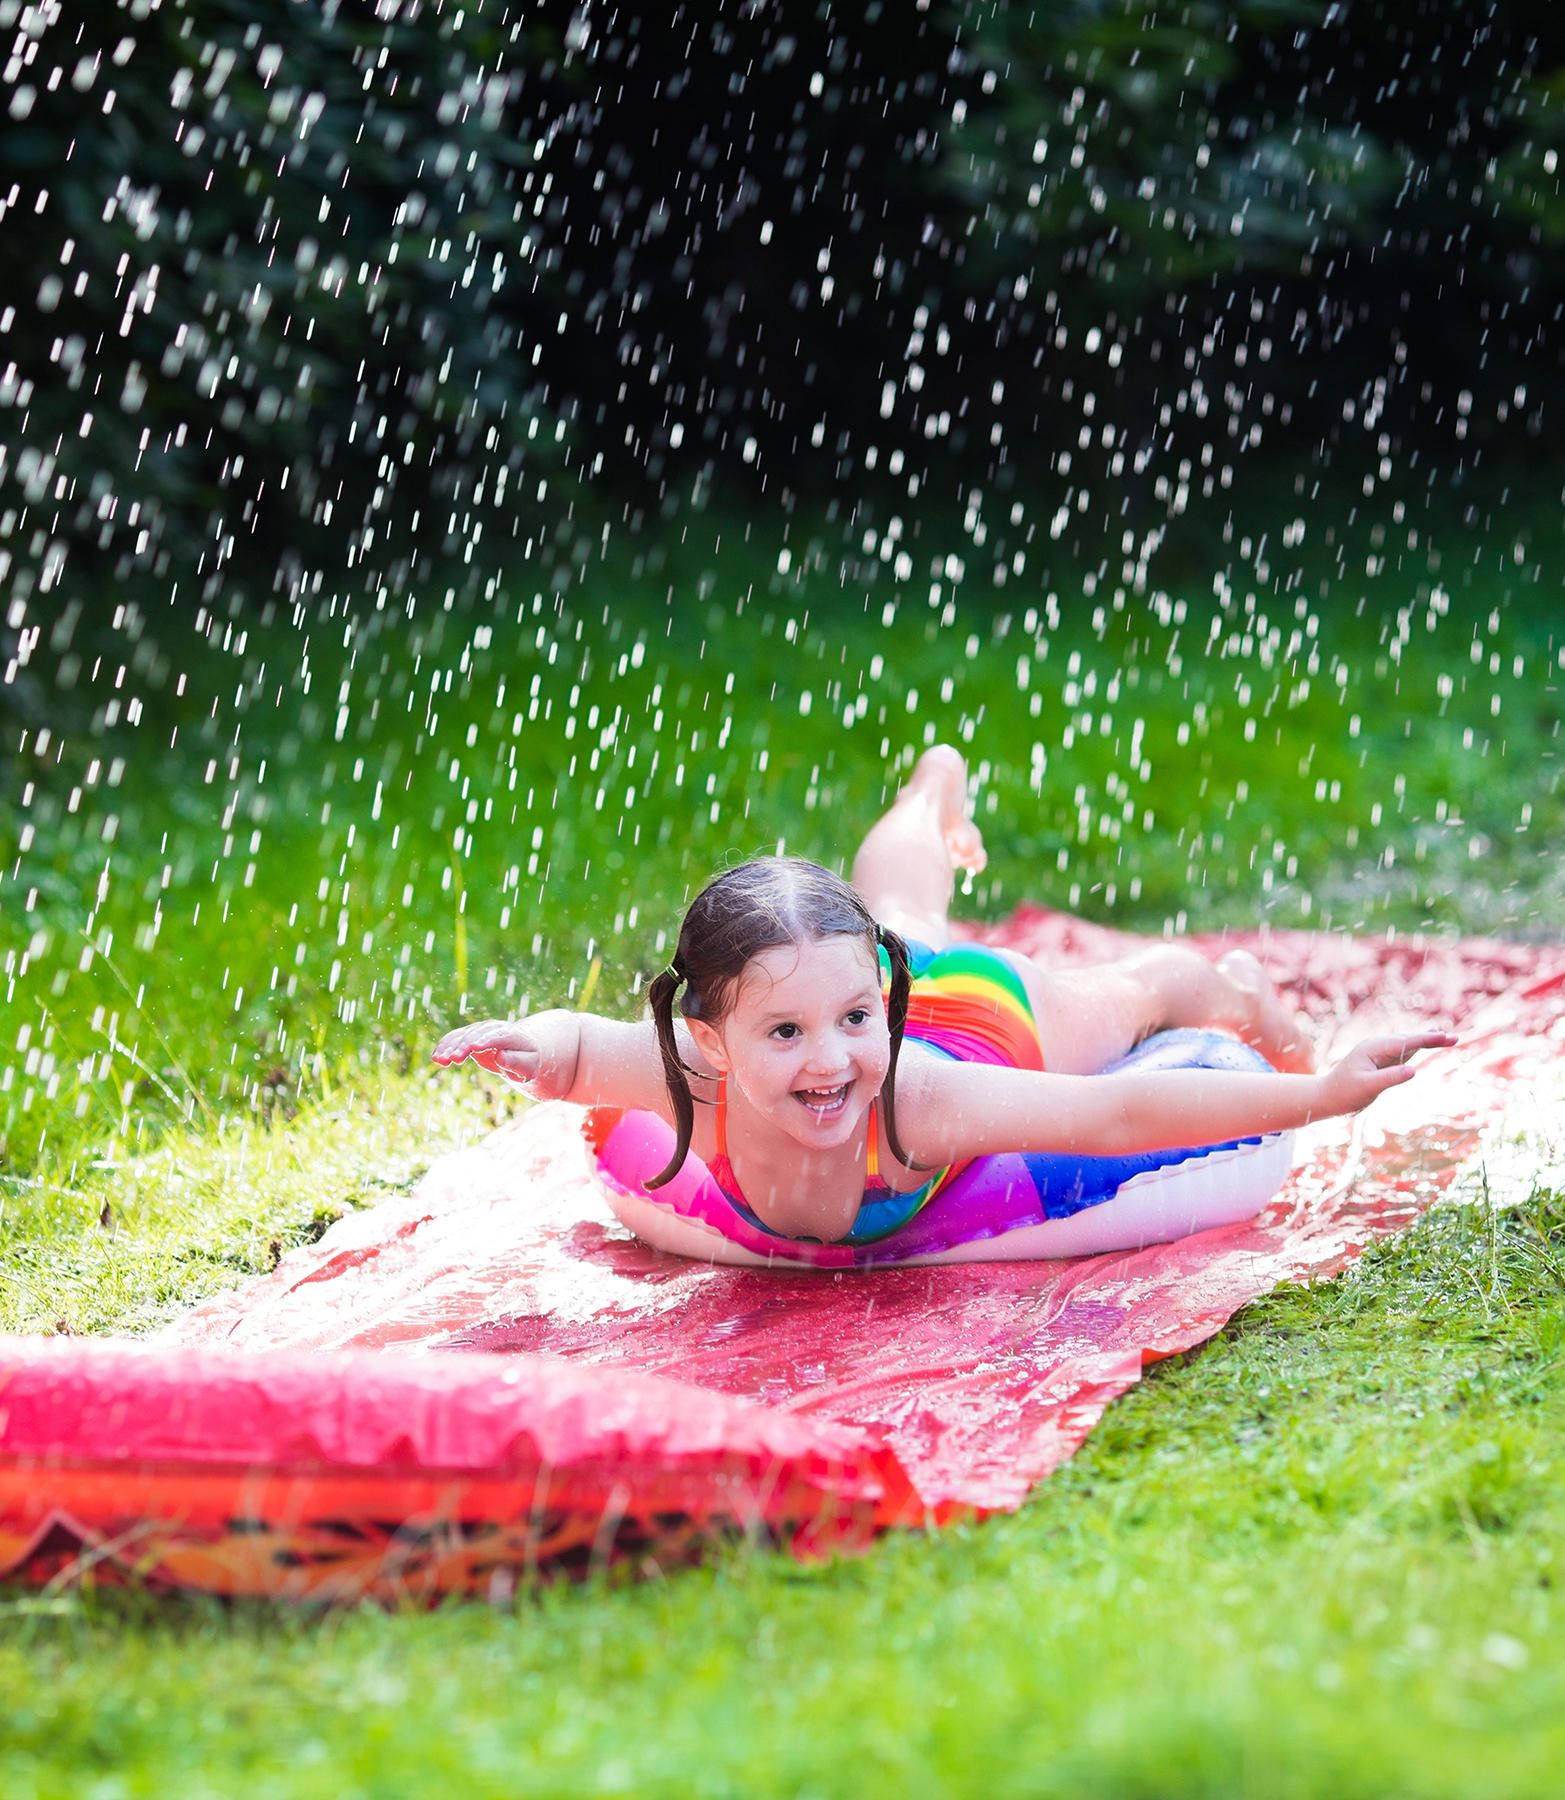 Kid playing on slip n slide